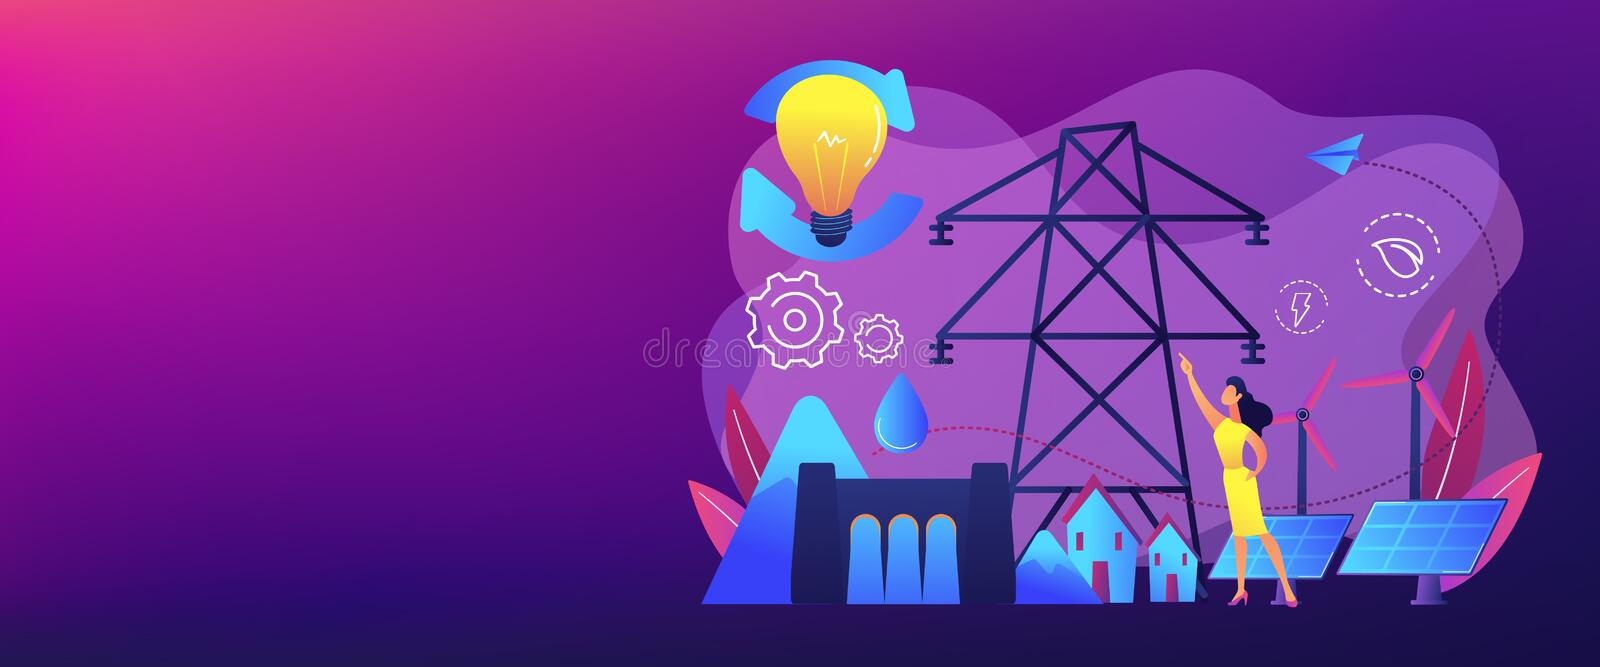 Sustainable energy concept banner header. royalty free illustration